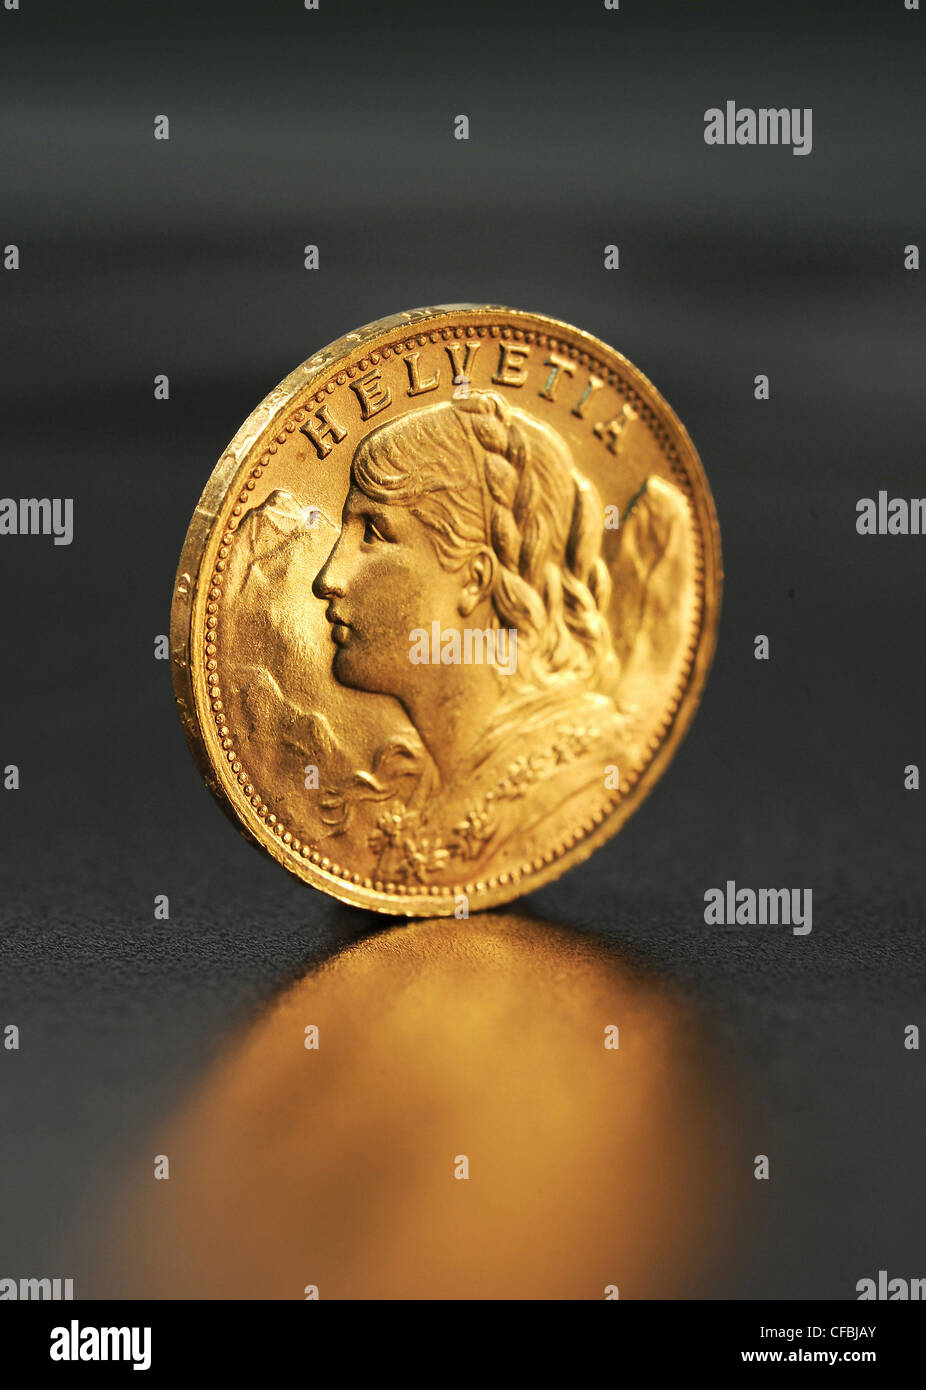 Valuable immagini valuable fotos stock alamy for Valore sicuro